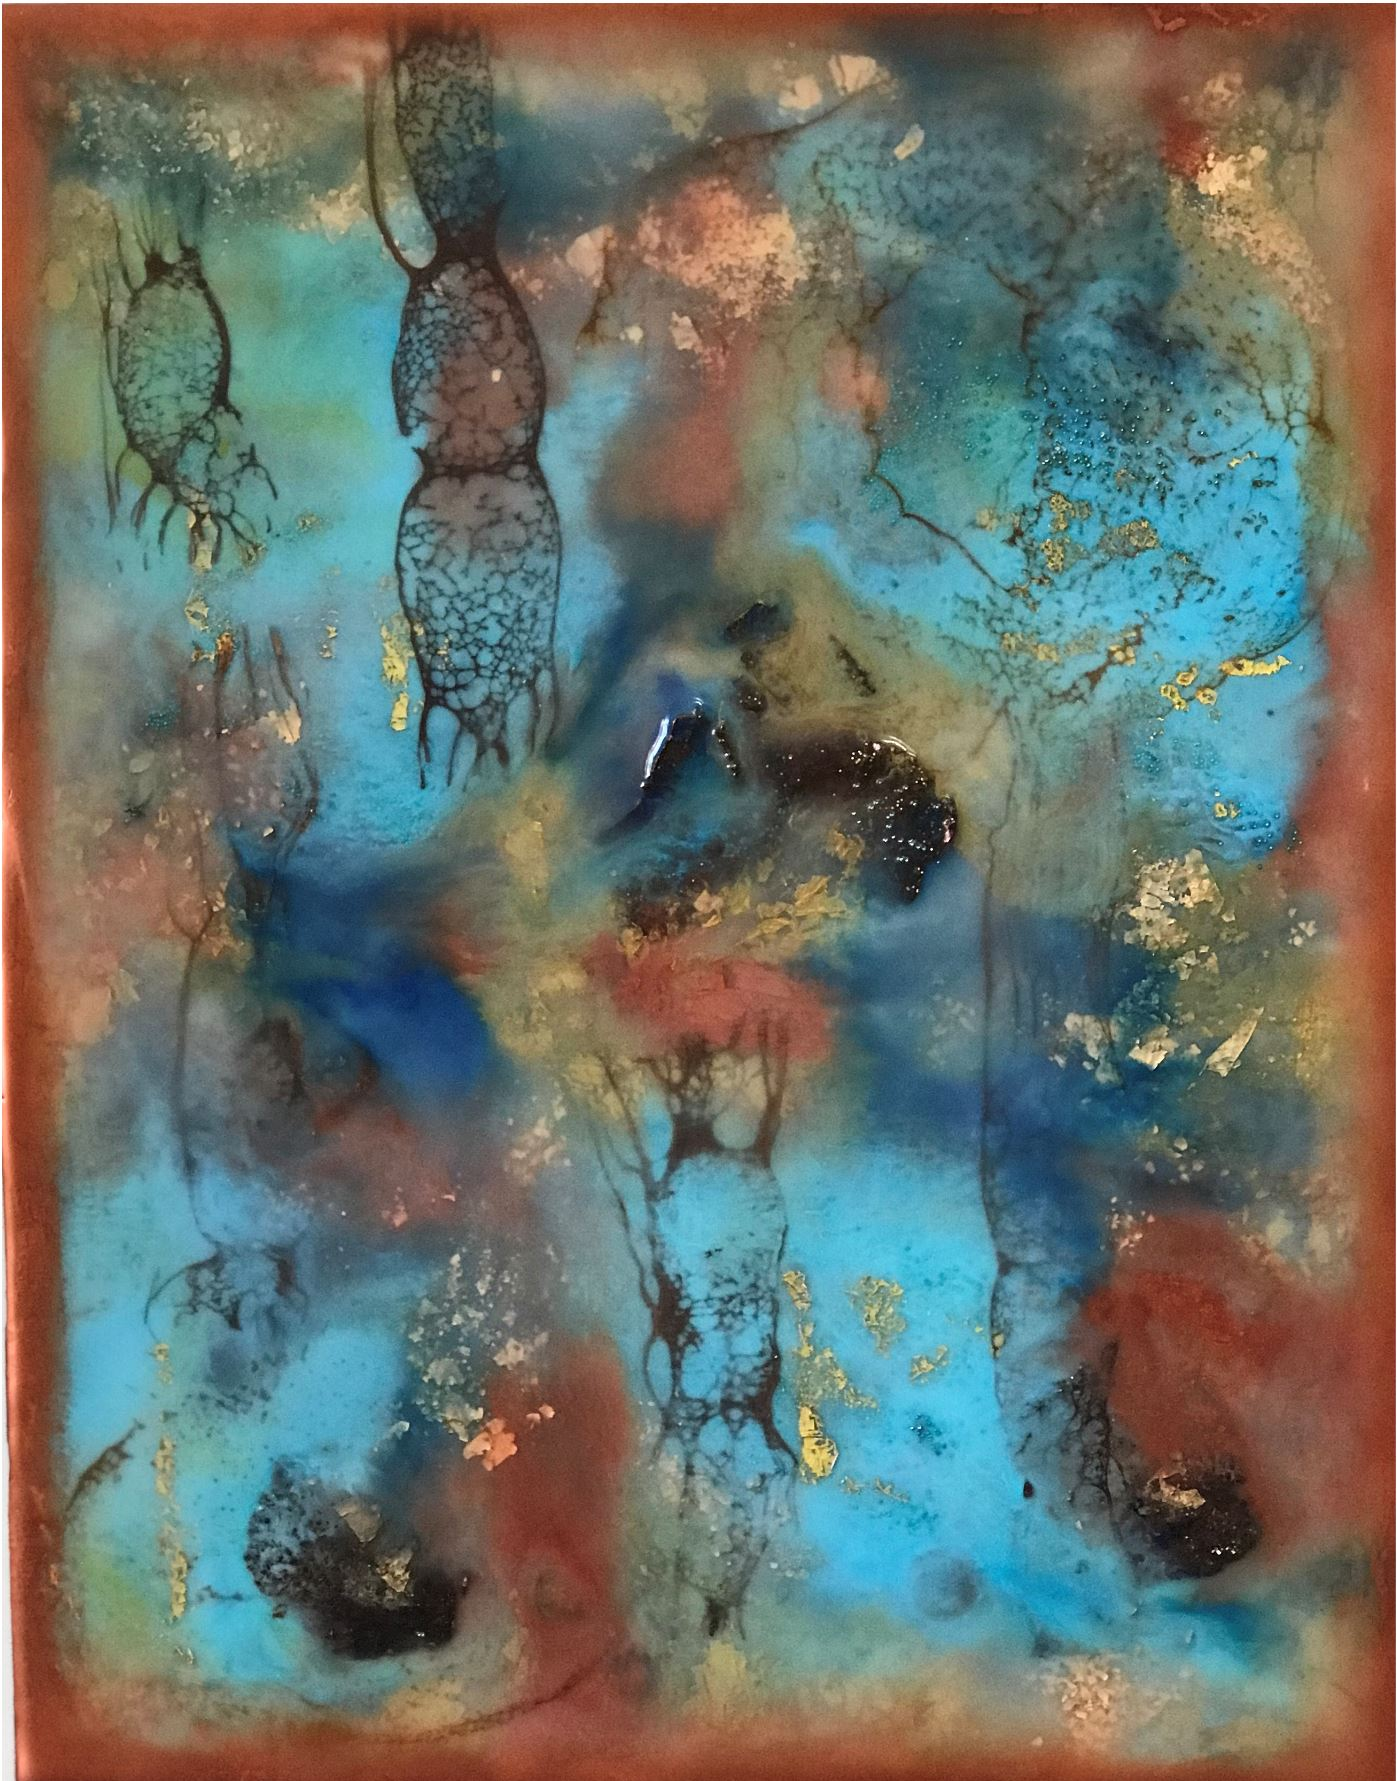 The Looking Glass, 2018, Encaustic, 11 x 14 x 1 inches, $350